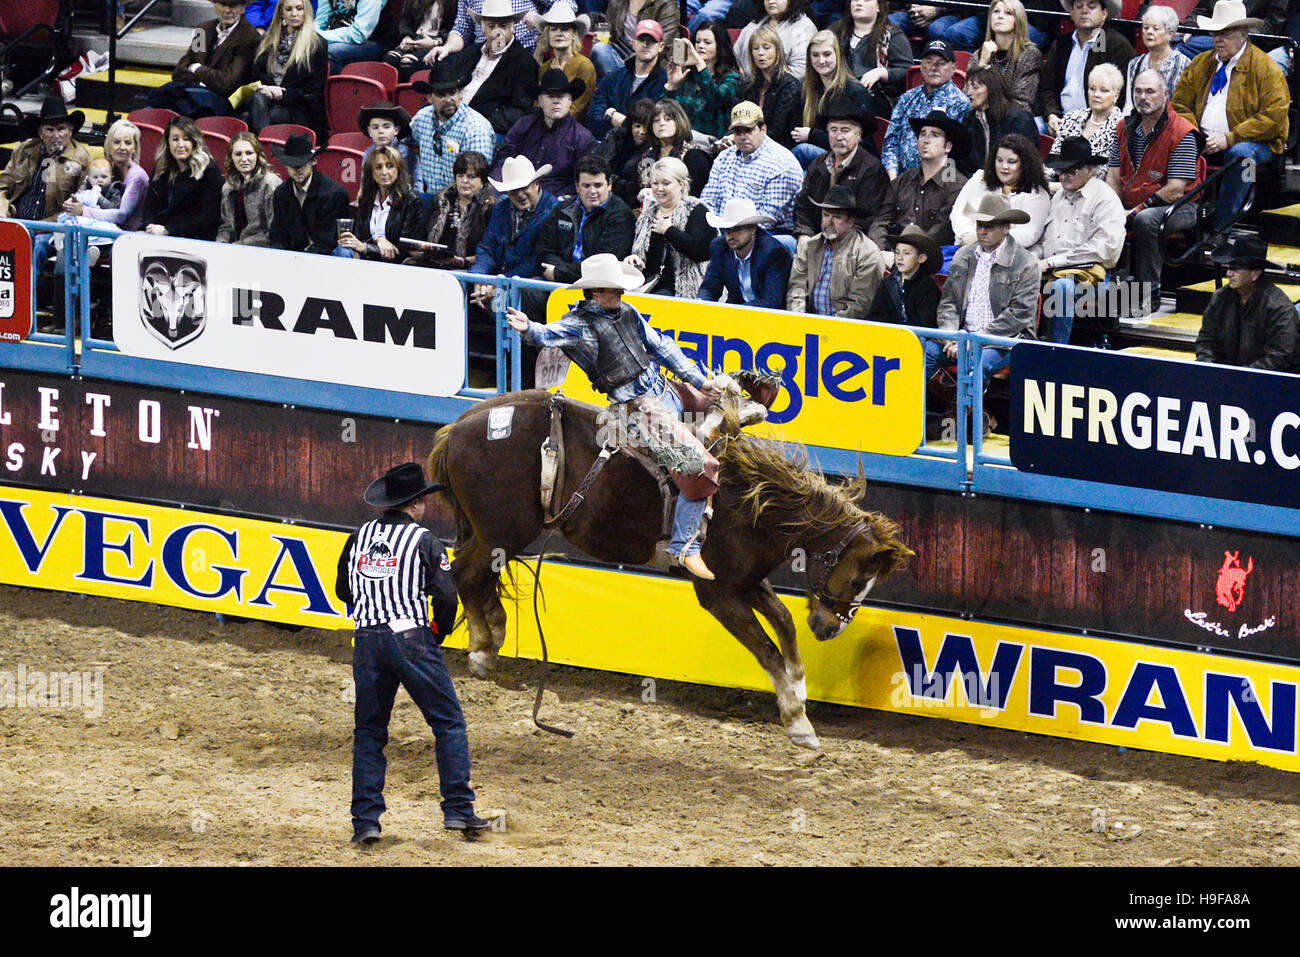 Las Vegas Nevada, December 2015 - Bronco riding at the National Rodeo Finals NFR - Stock Image